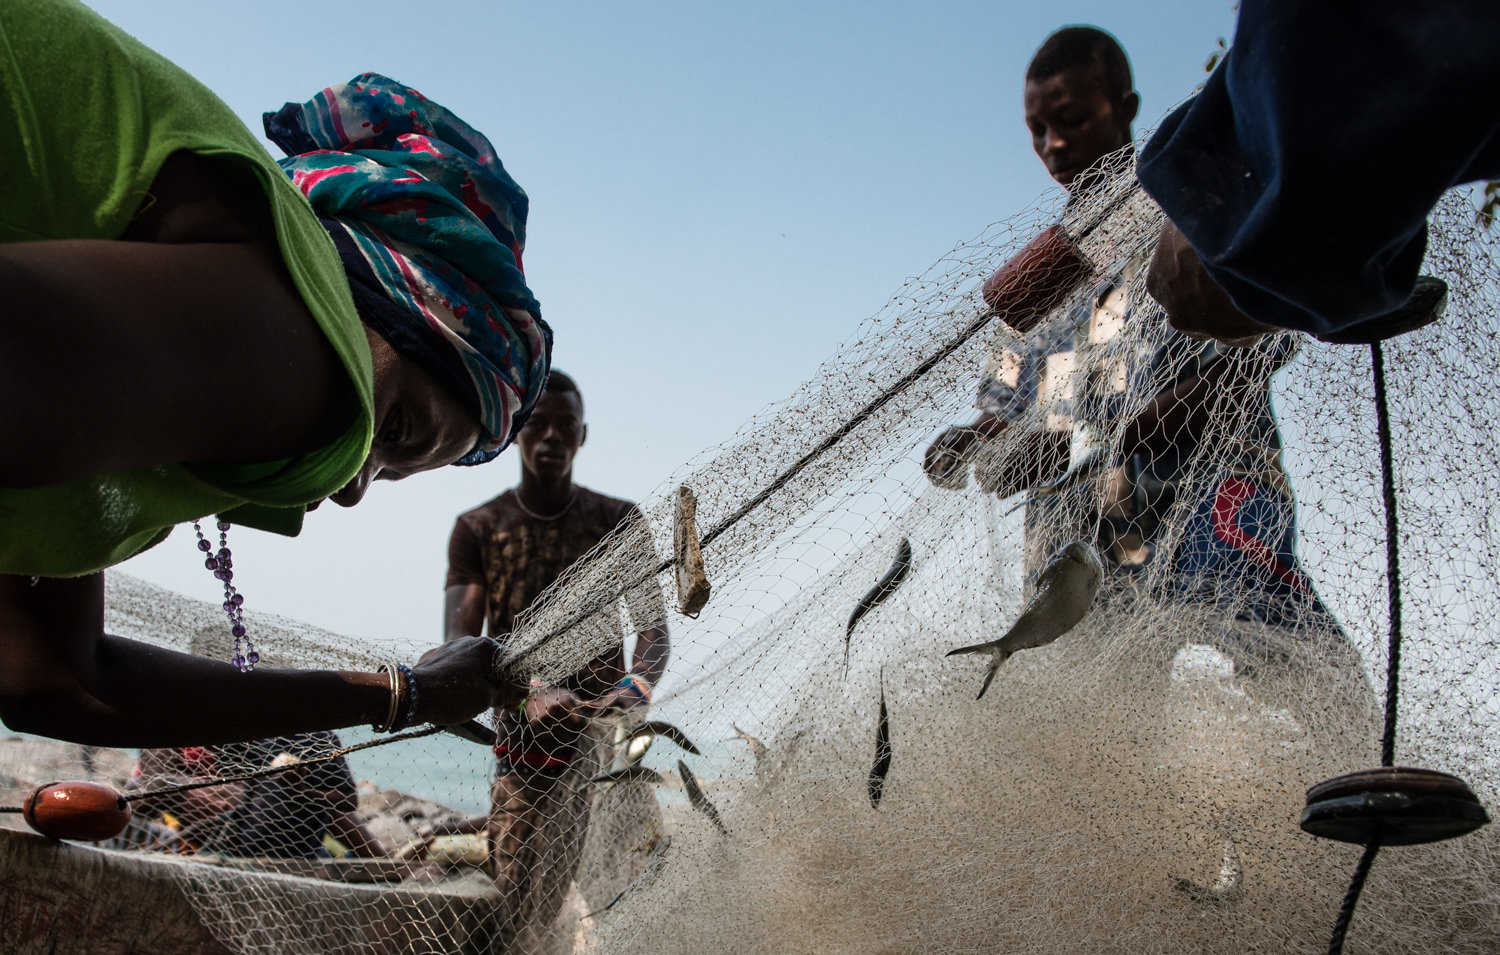 Villagers from John Obey collect the morning's catch from the fishermen's nets.  Fishing is the remote village's livelihood. Catches have declined over the years with the arrival of illegal industrial trawlers.